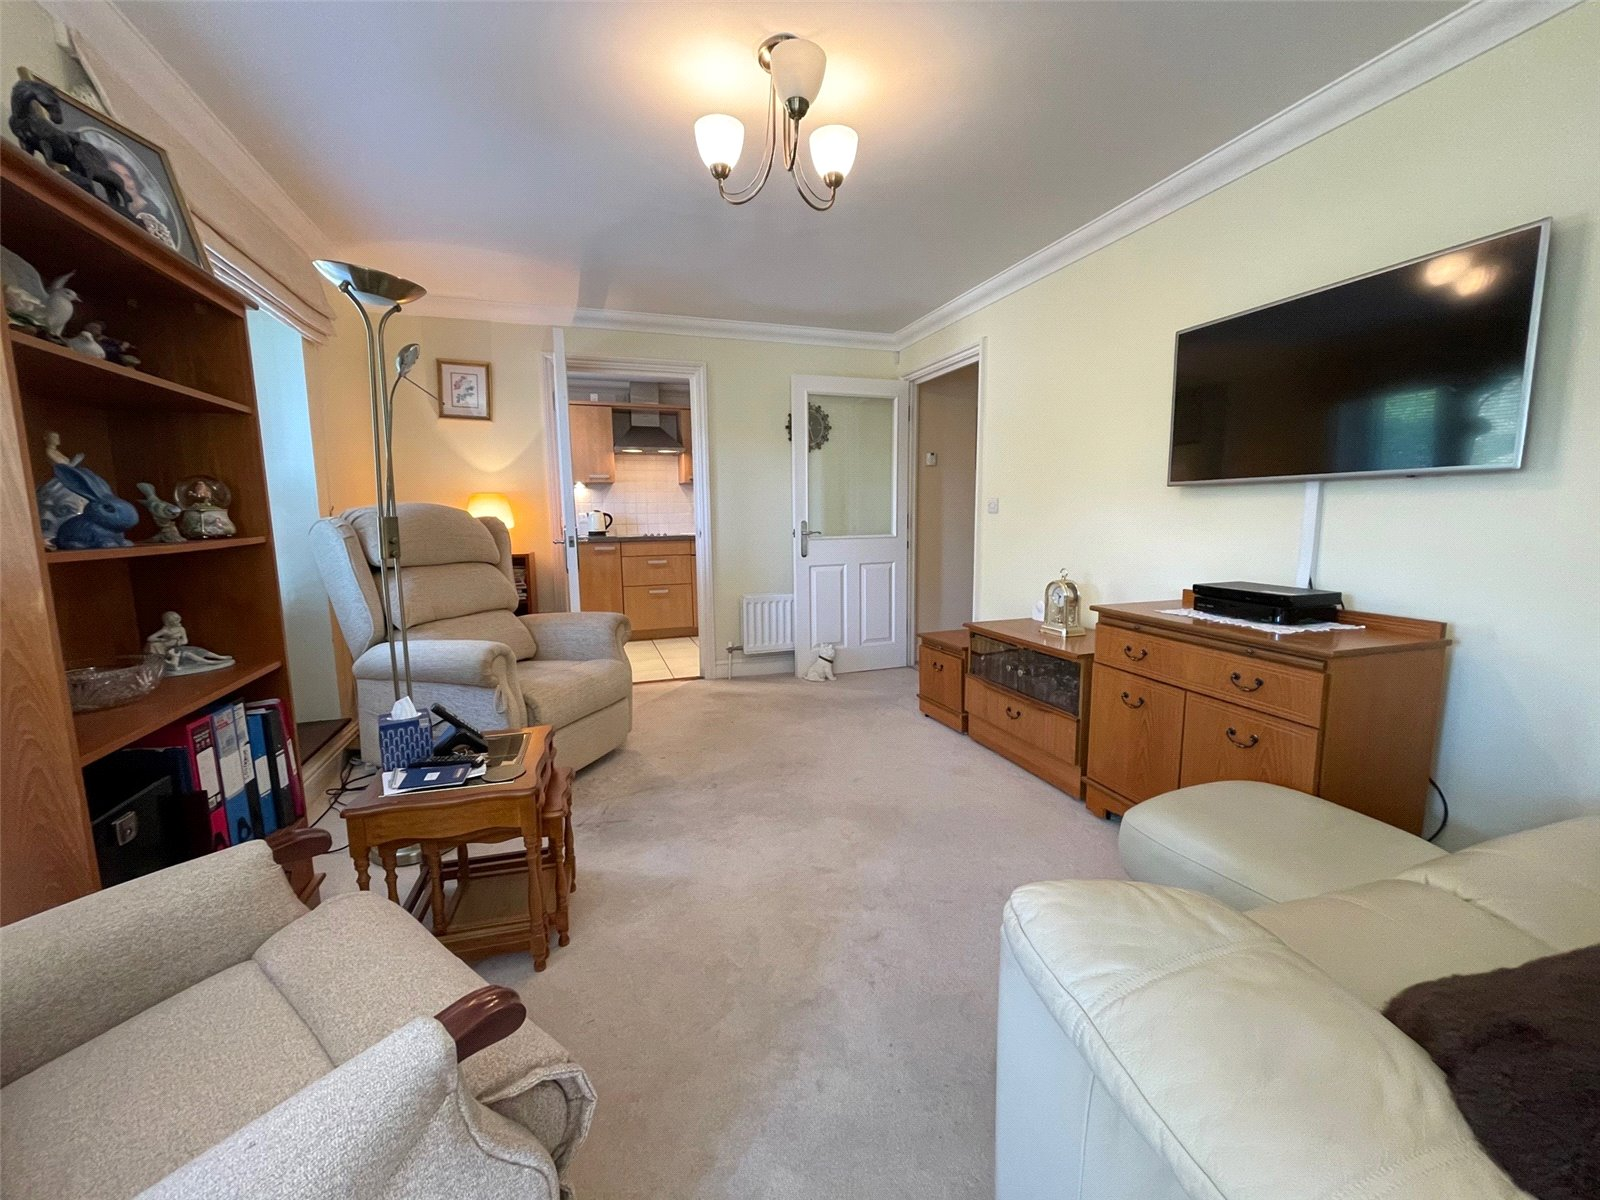 Eversley Court, St Annes Road